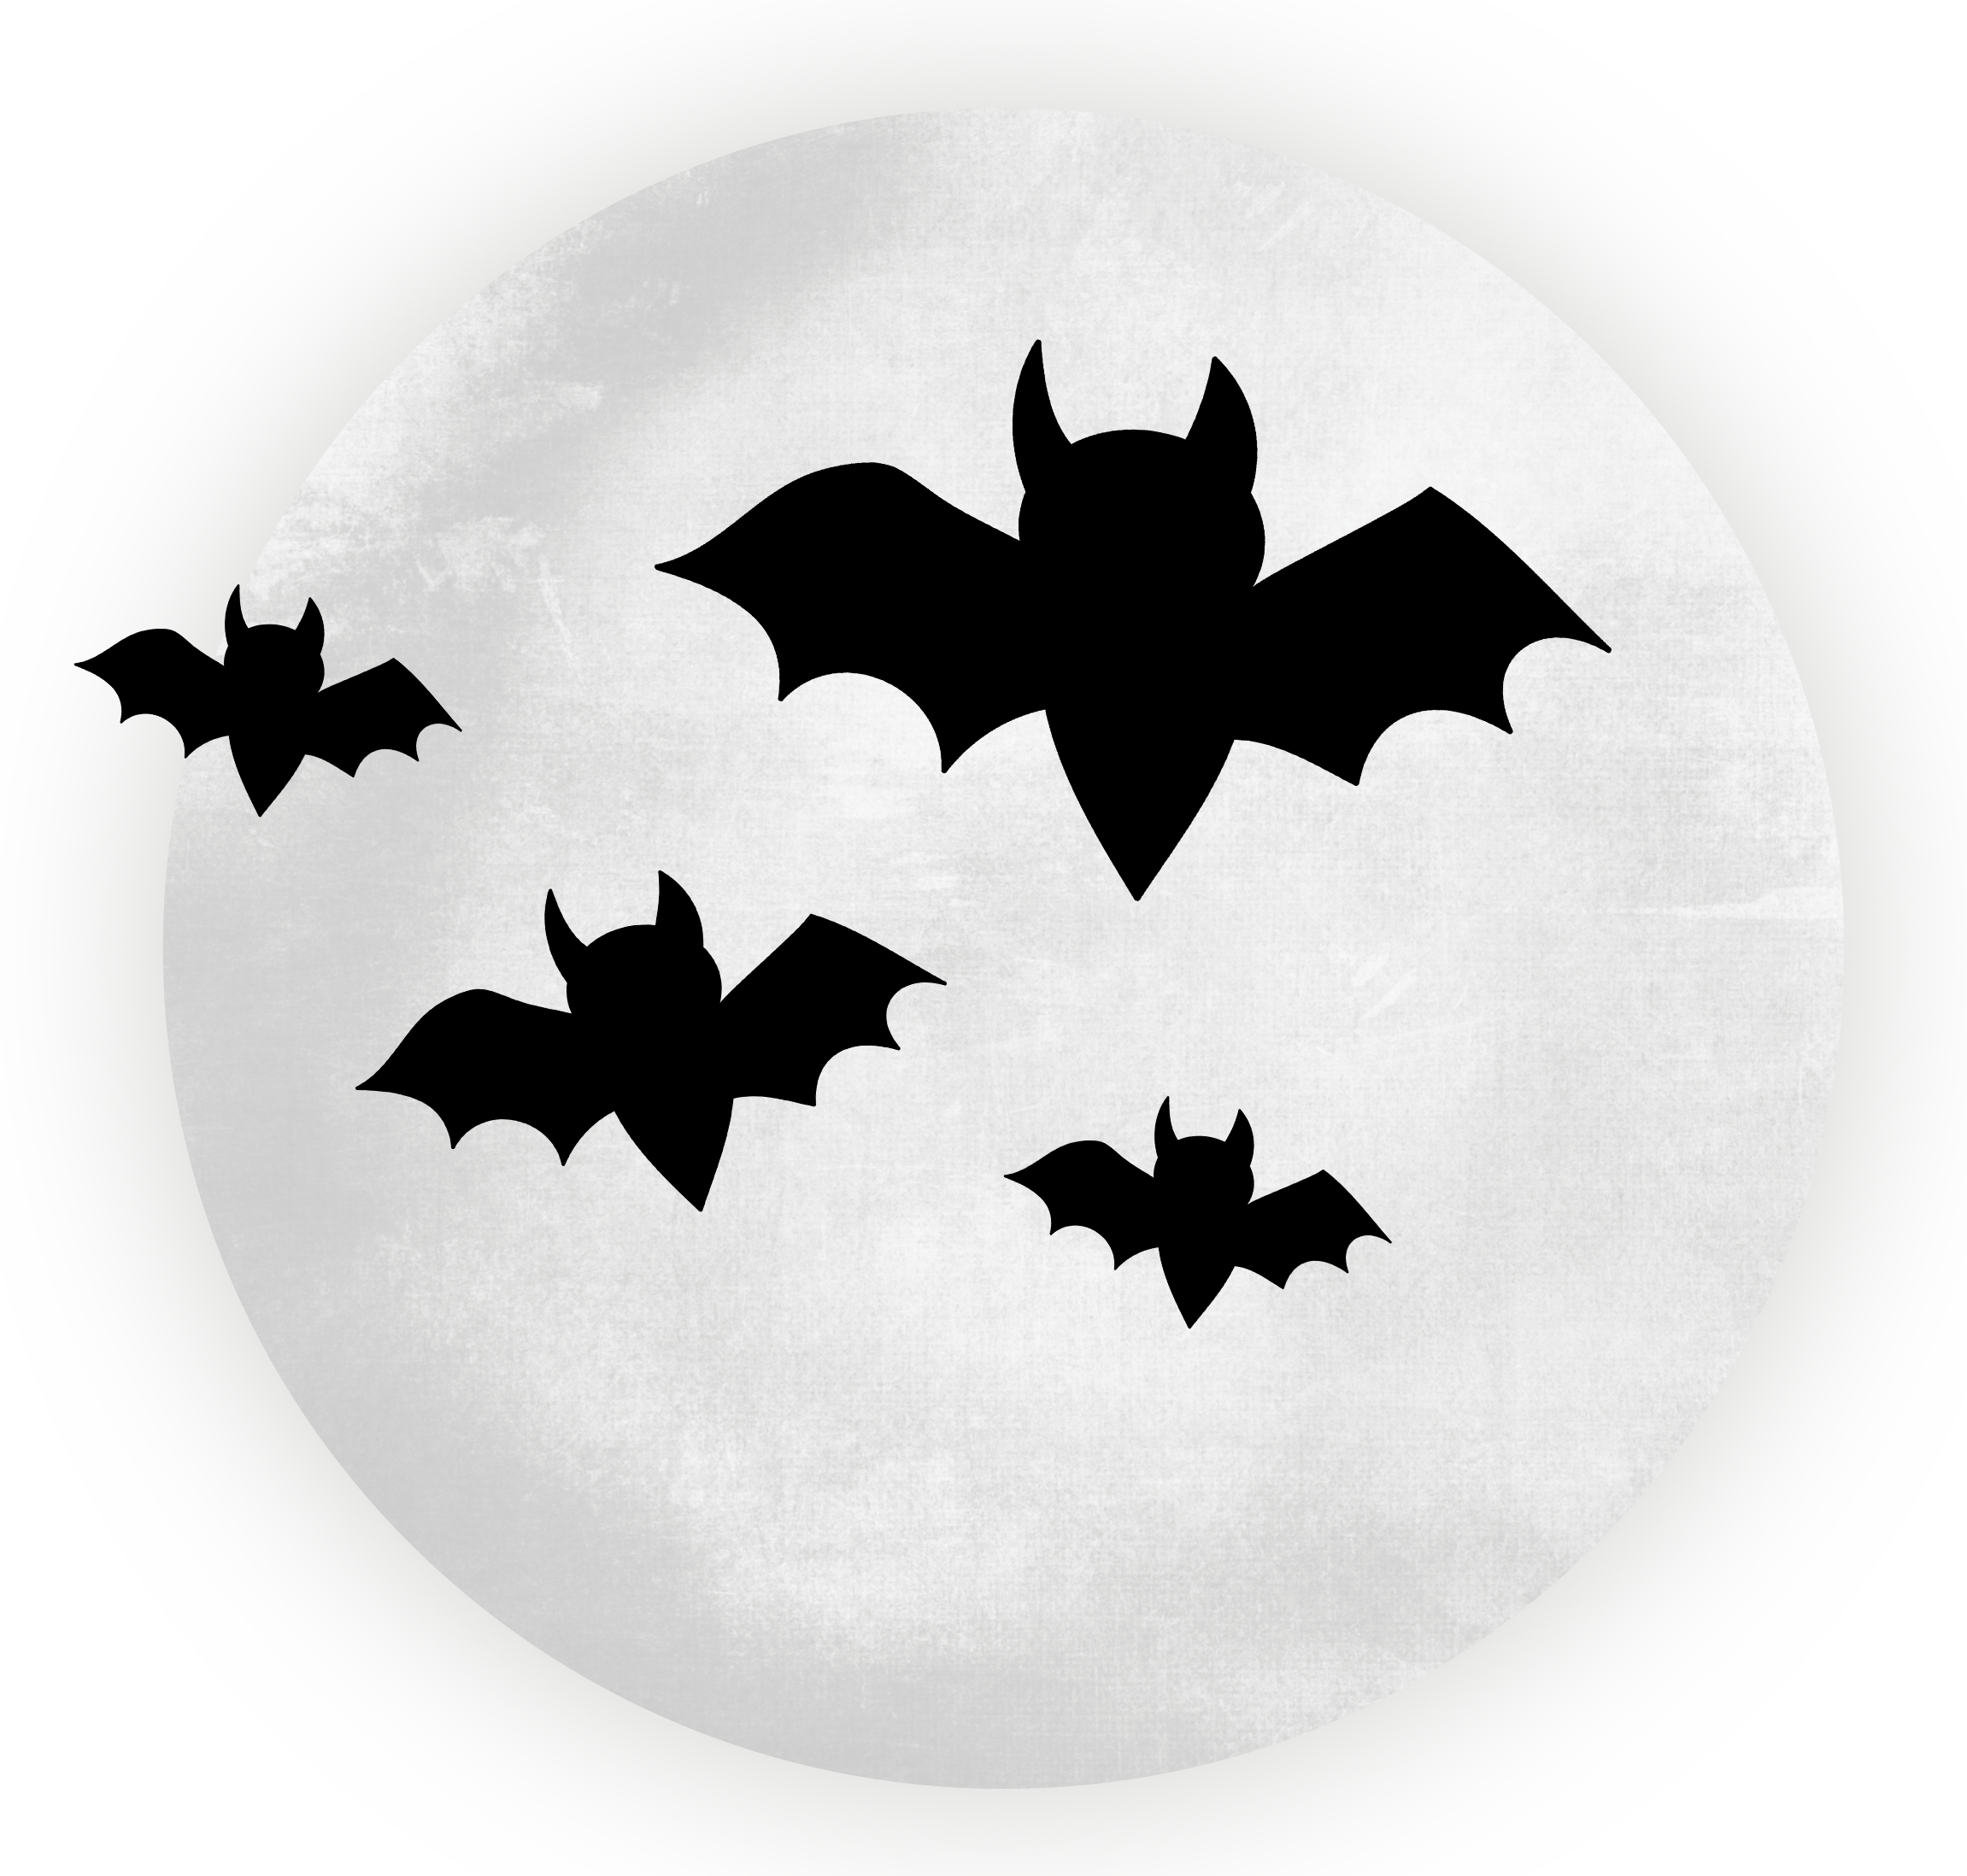 Large_Transparent_Moon_with_Bats_Halloween_Clipart.png?m=1375135200.